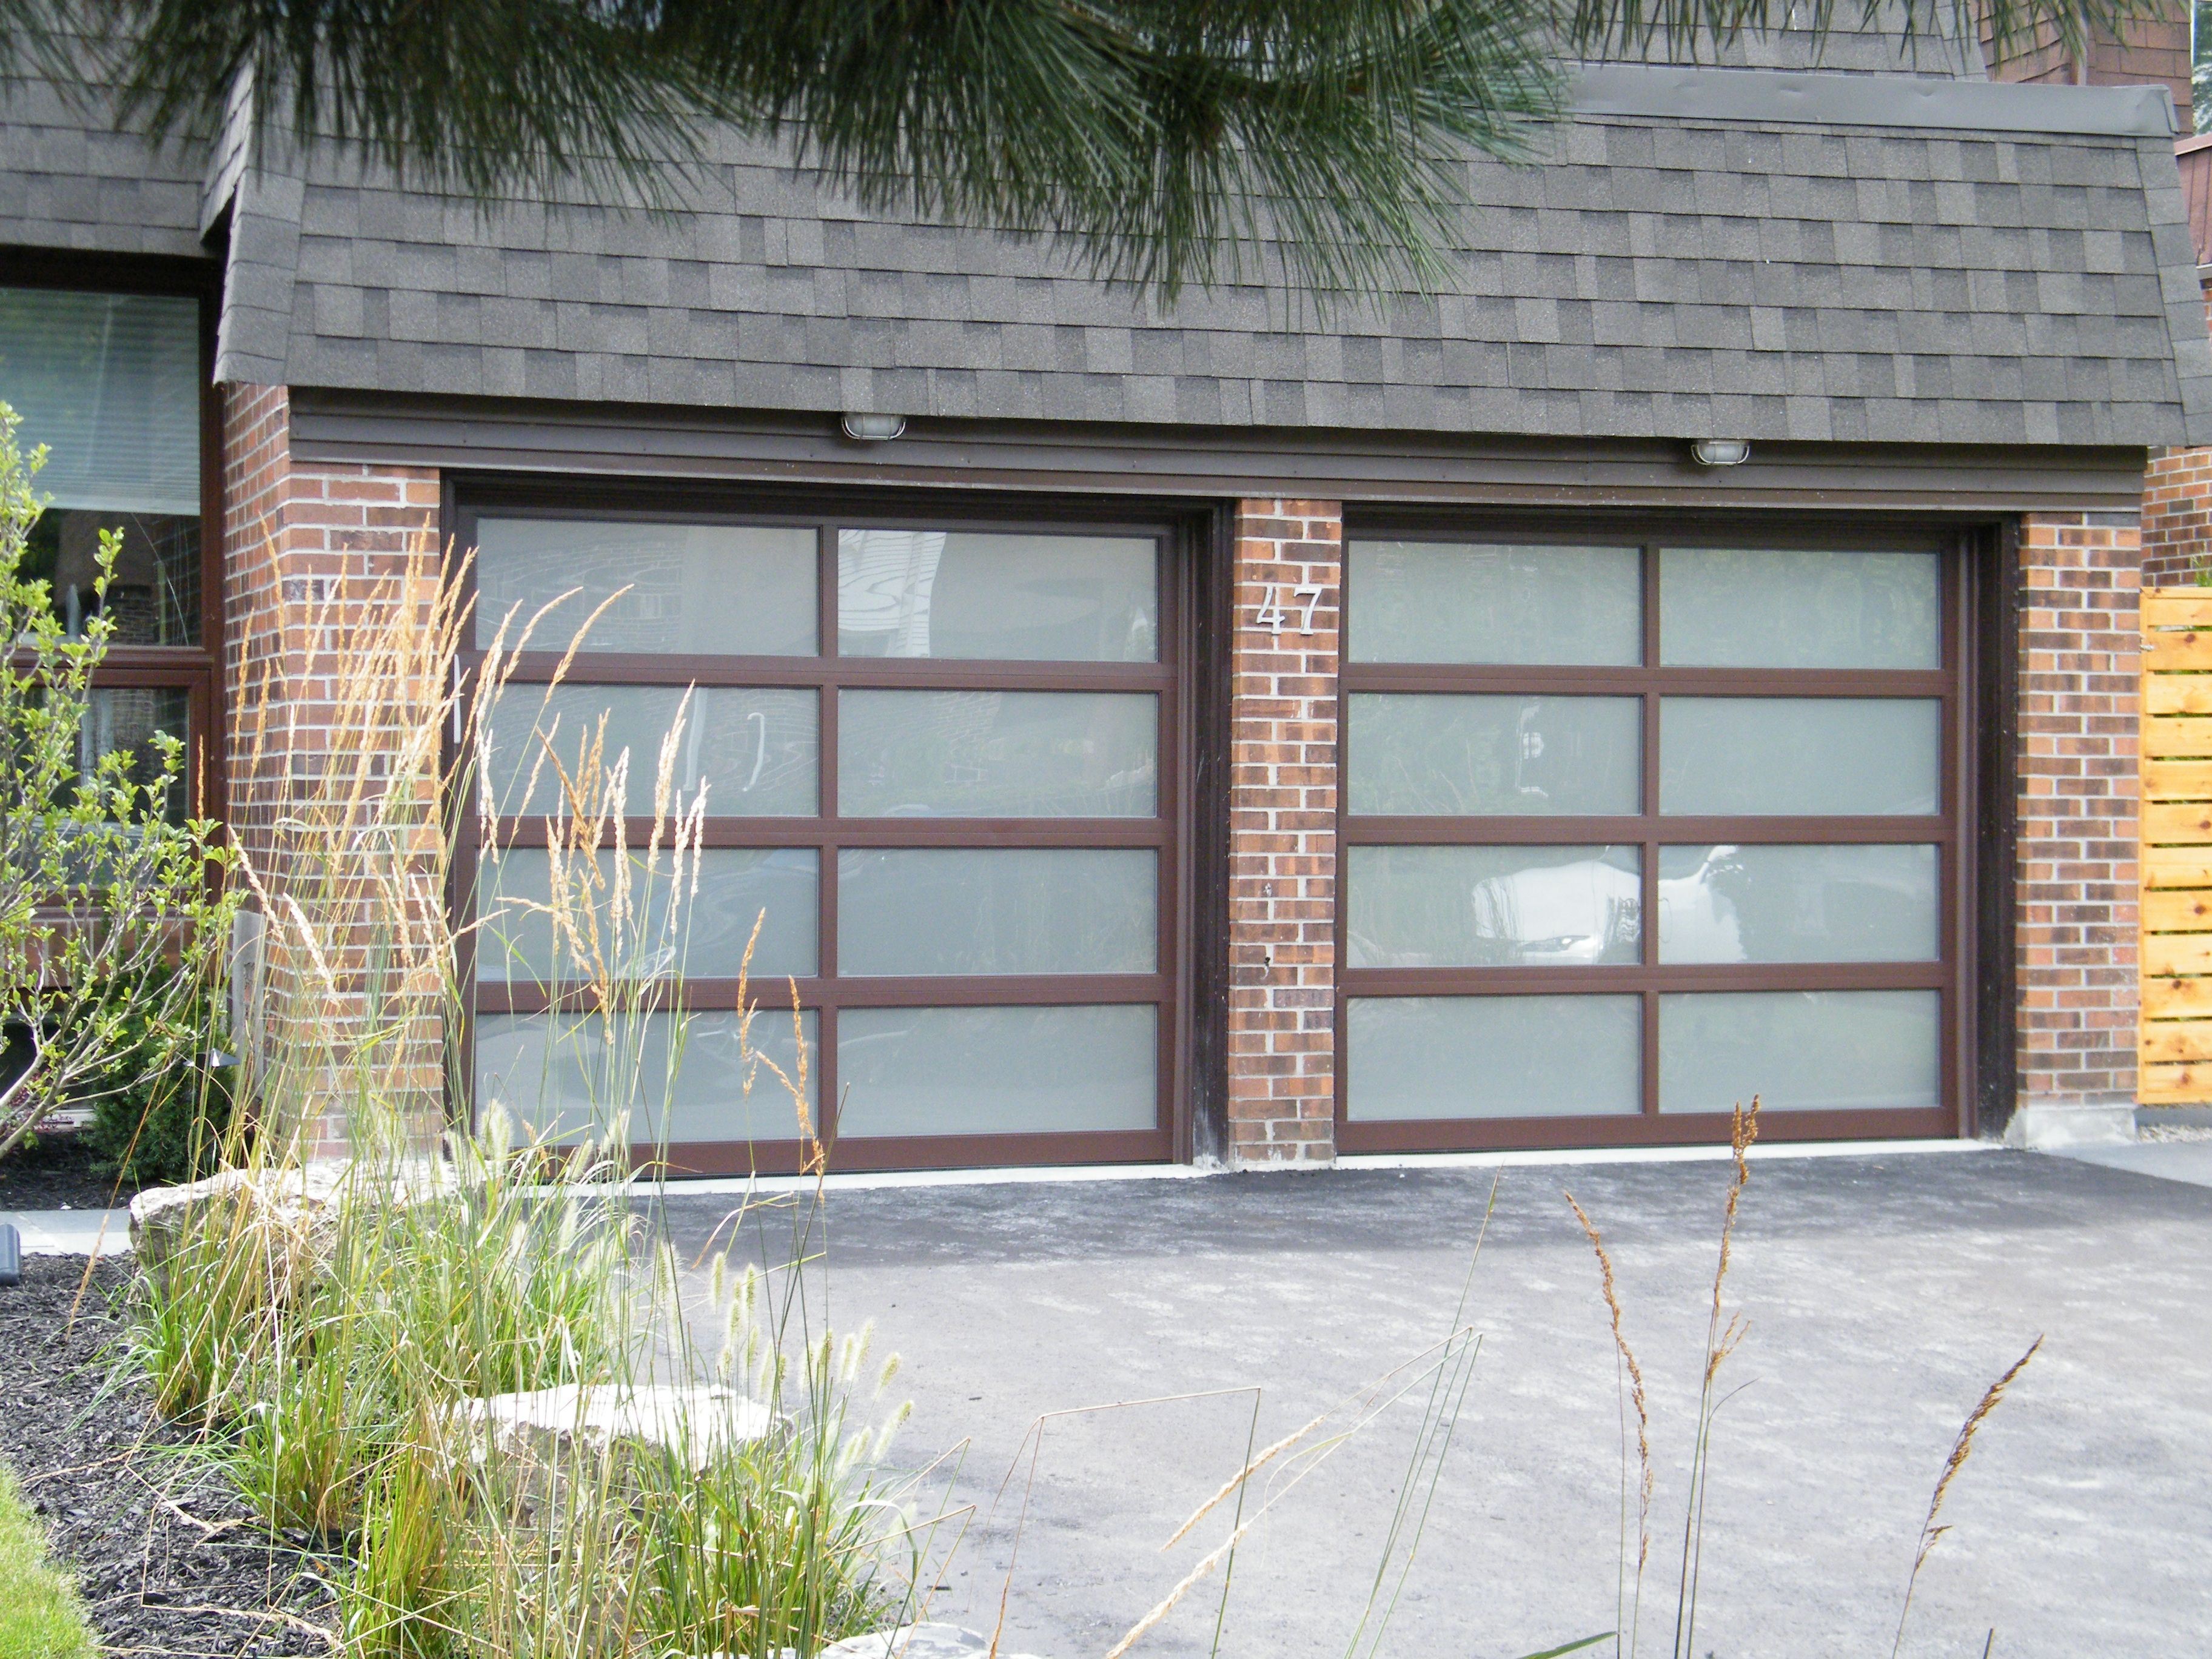 8x7 haas brown frosted glass doors modern garage doors 8x7 haas brown frosted glass doors planetlyrics Gallery